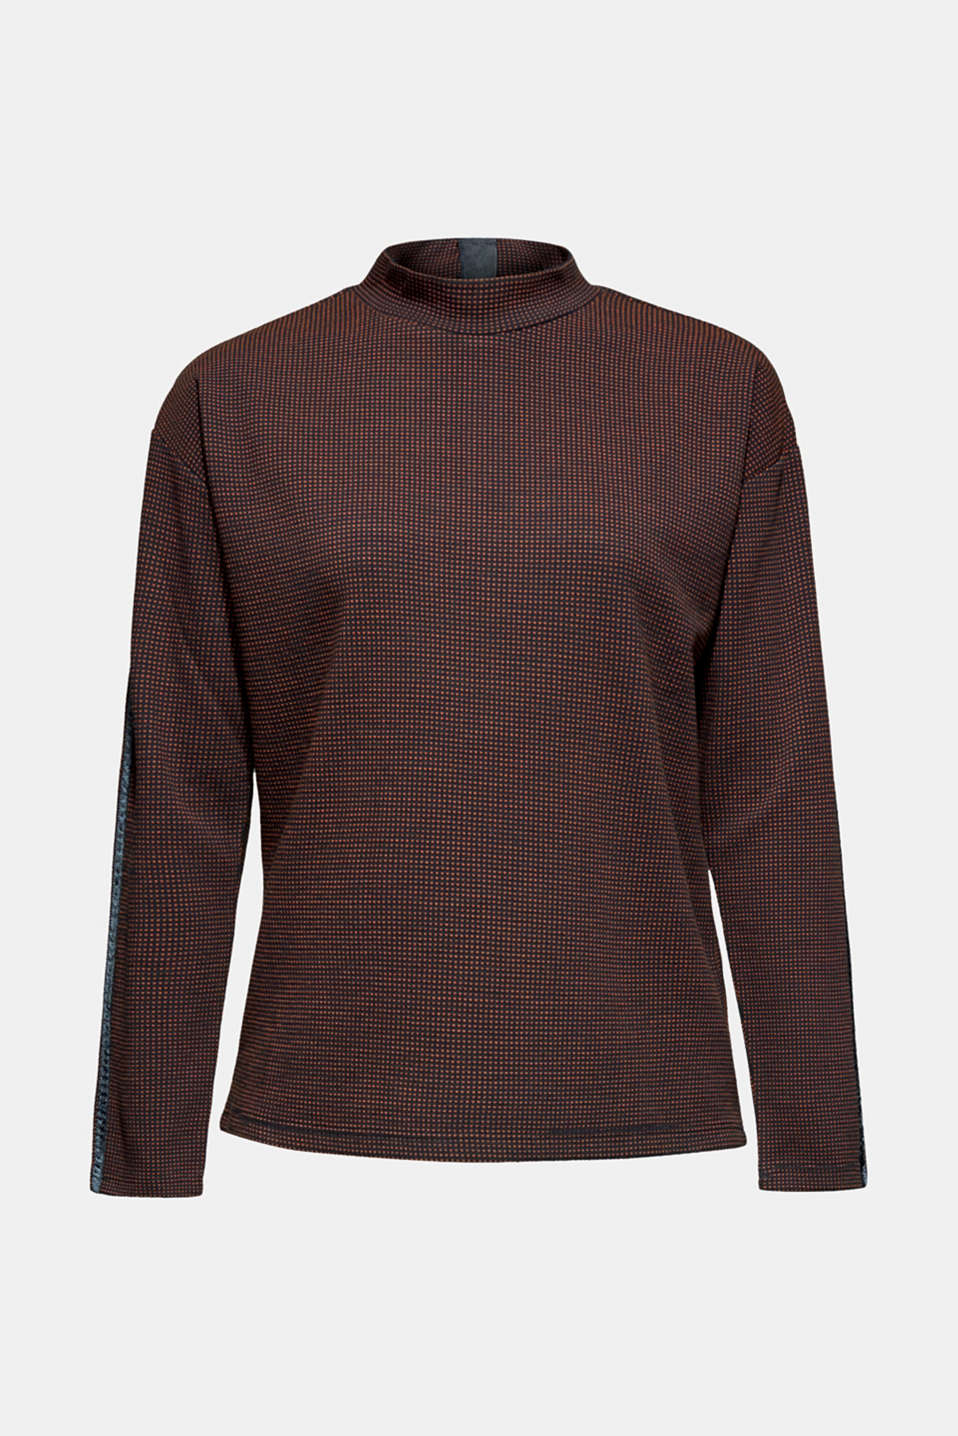 Long sleeve jacquard top with stand-up collar, NAVY, detail image number 7